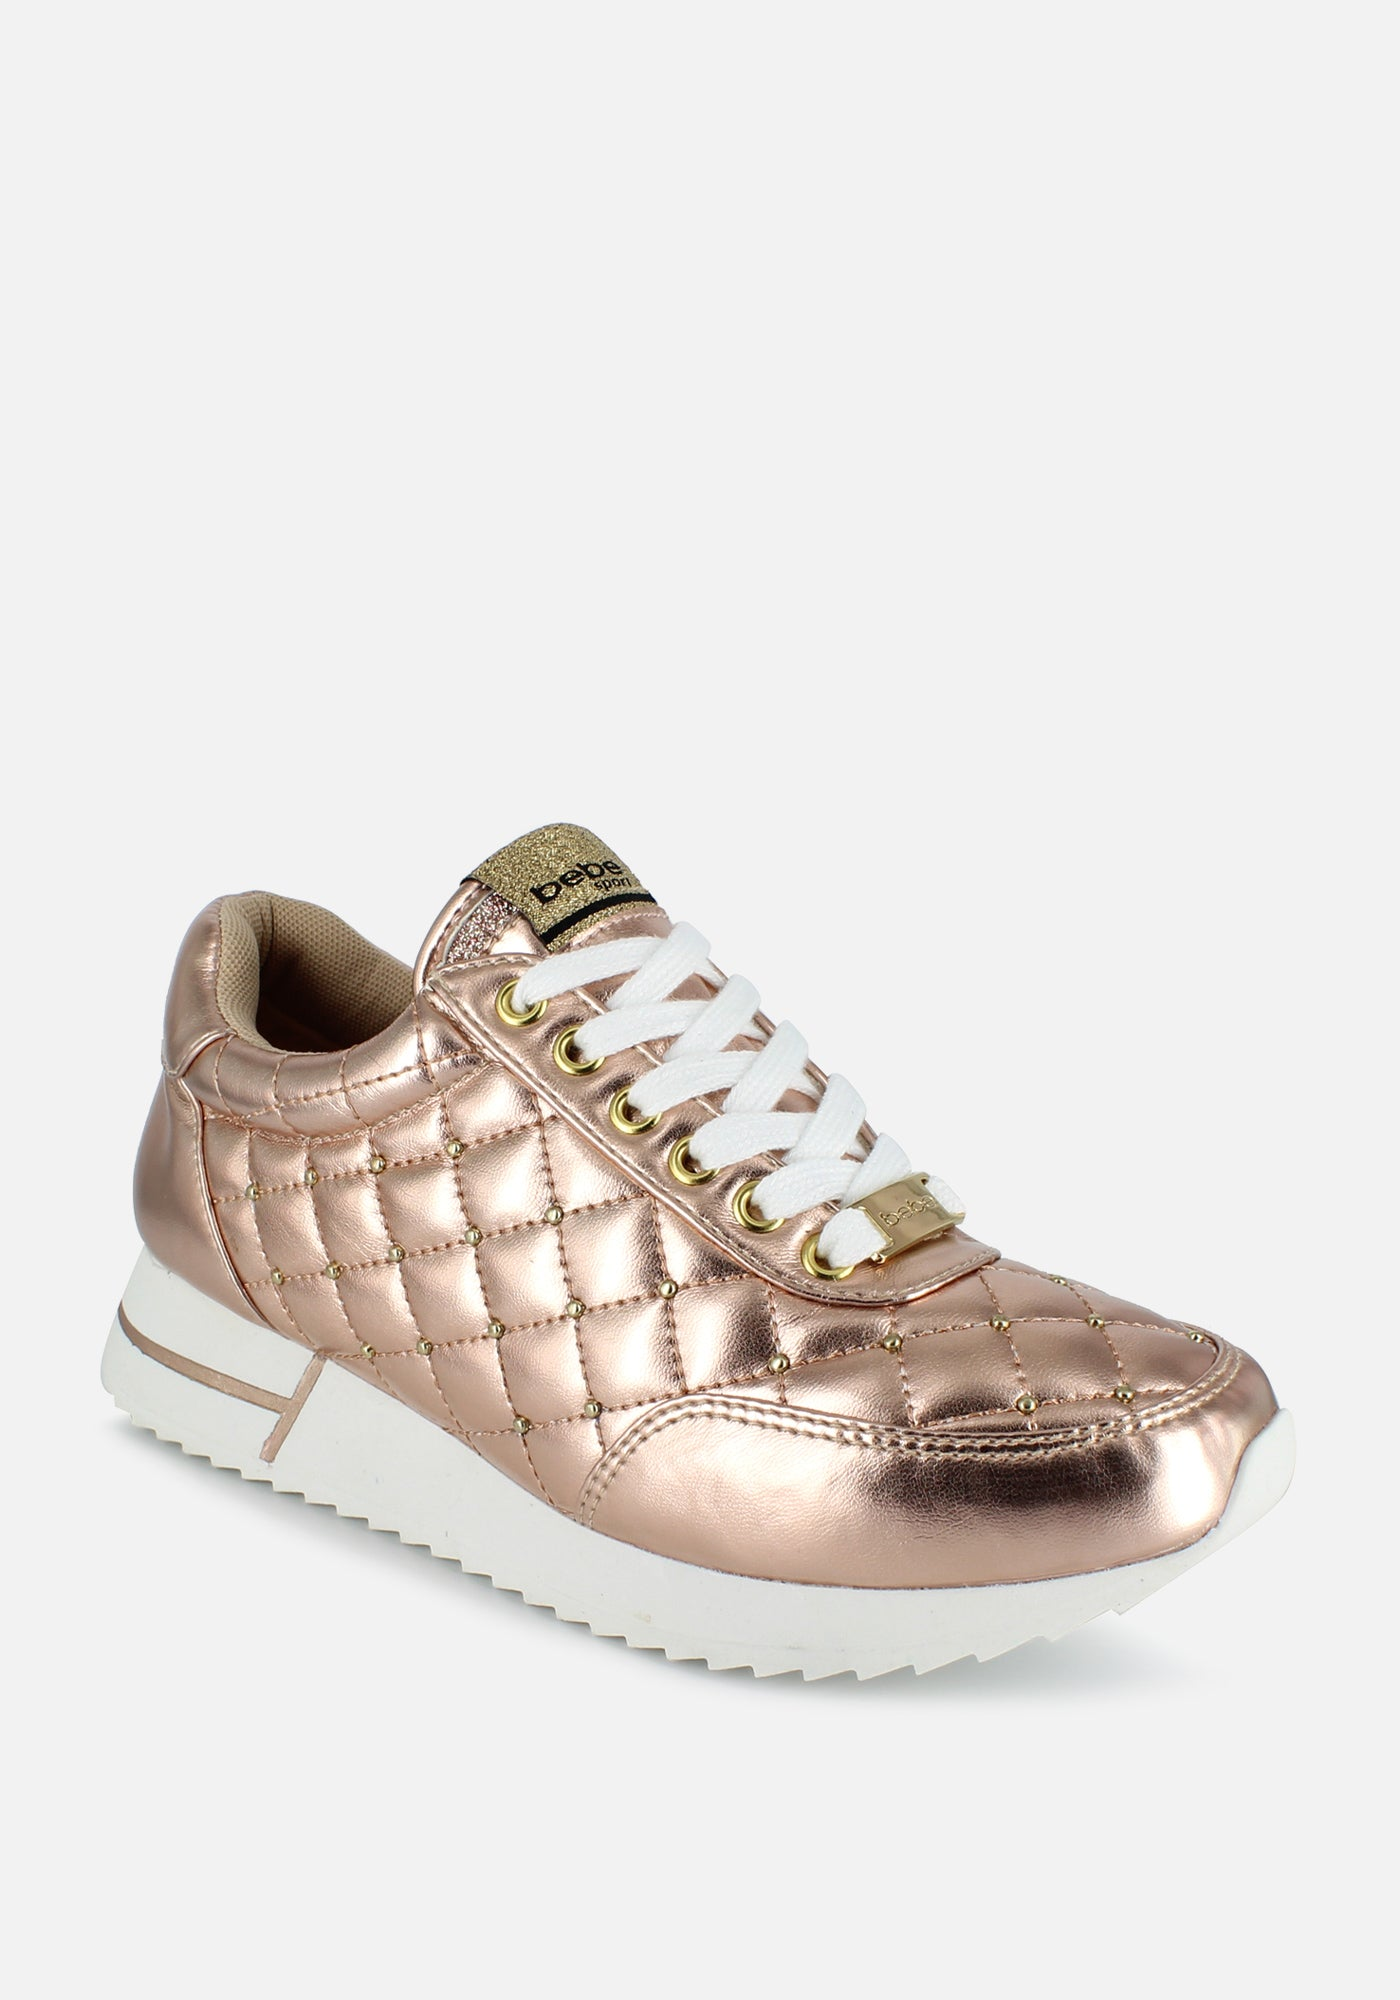 Bebe Women's Barkley Quilted Sneakers, Size 6 in Rose Gold Synthetic